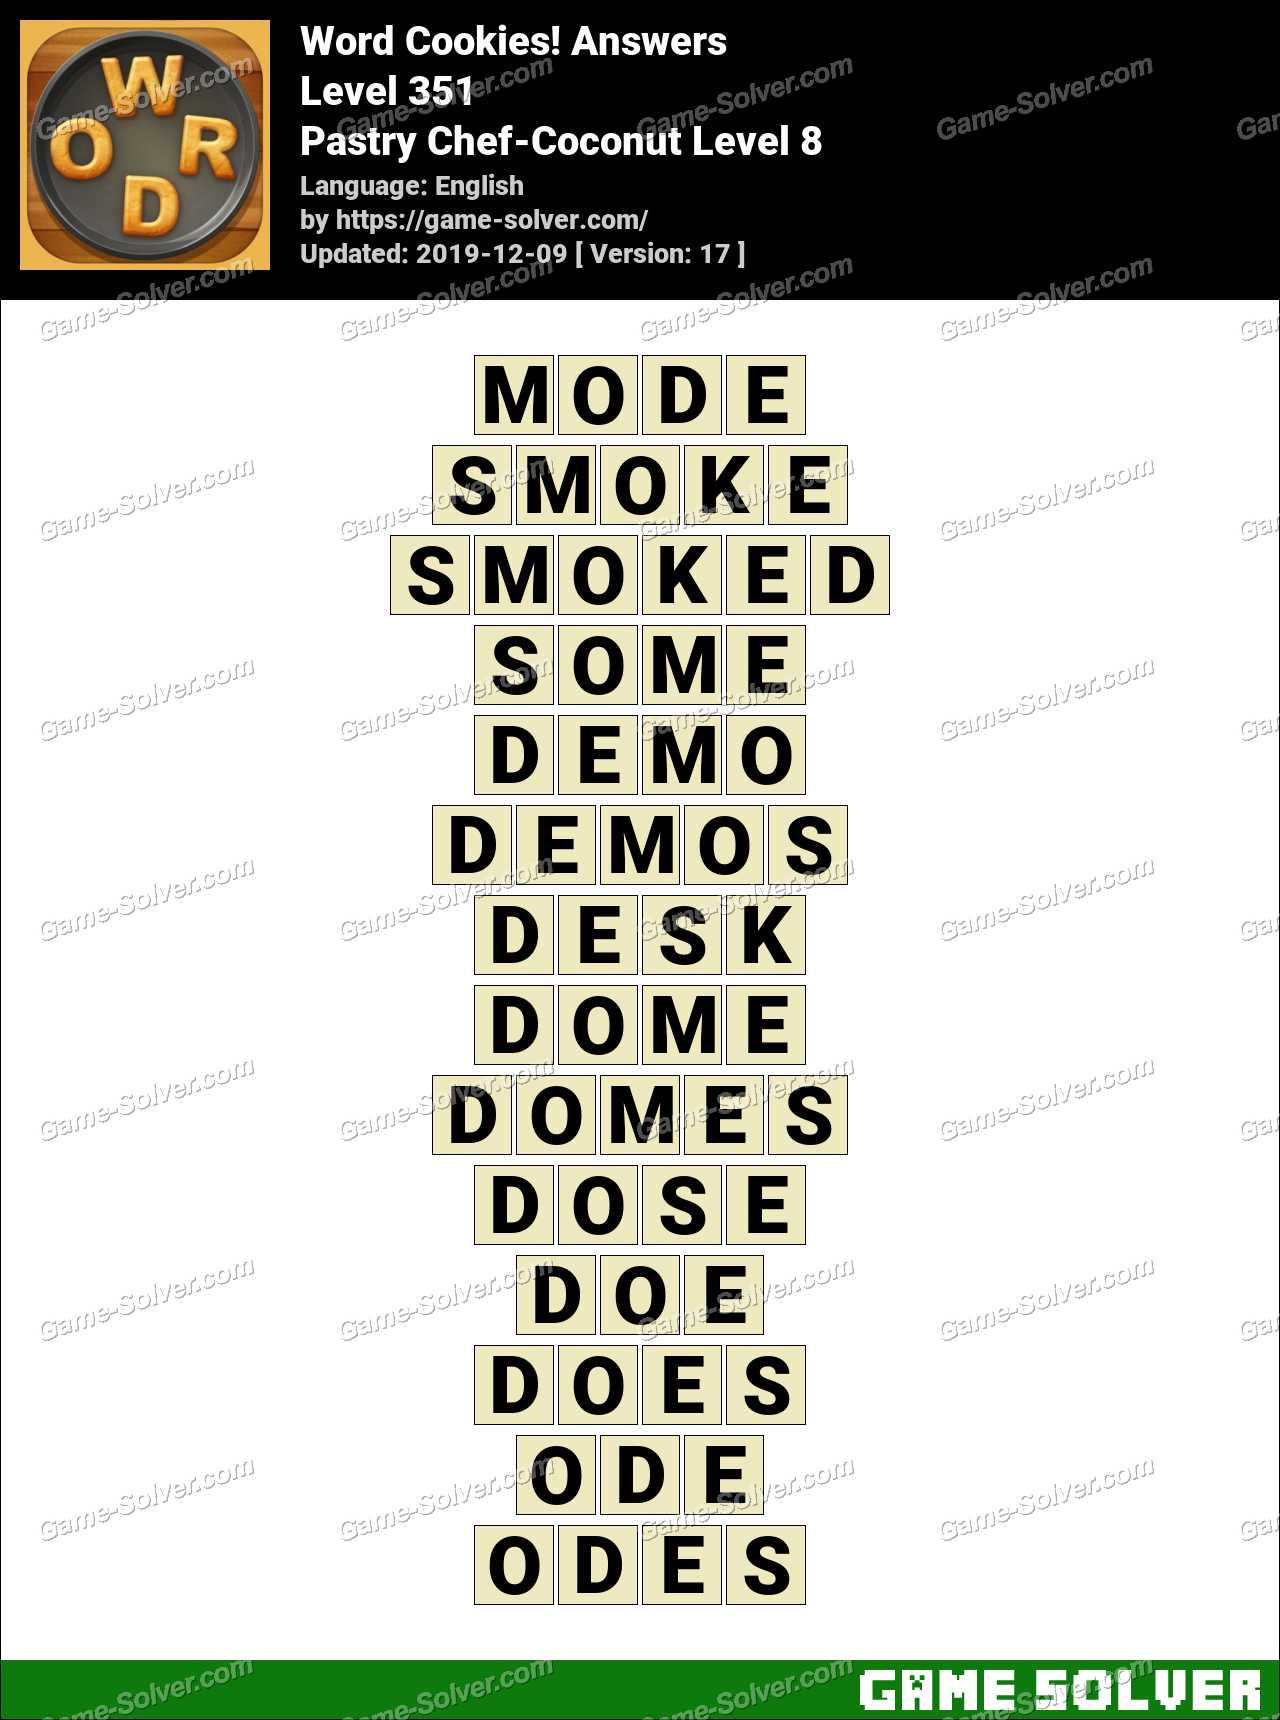 Word Cookies Pastry Chef-Coconut Level 8 Answers